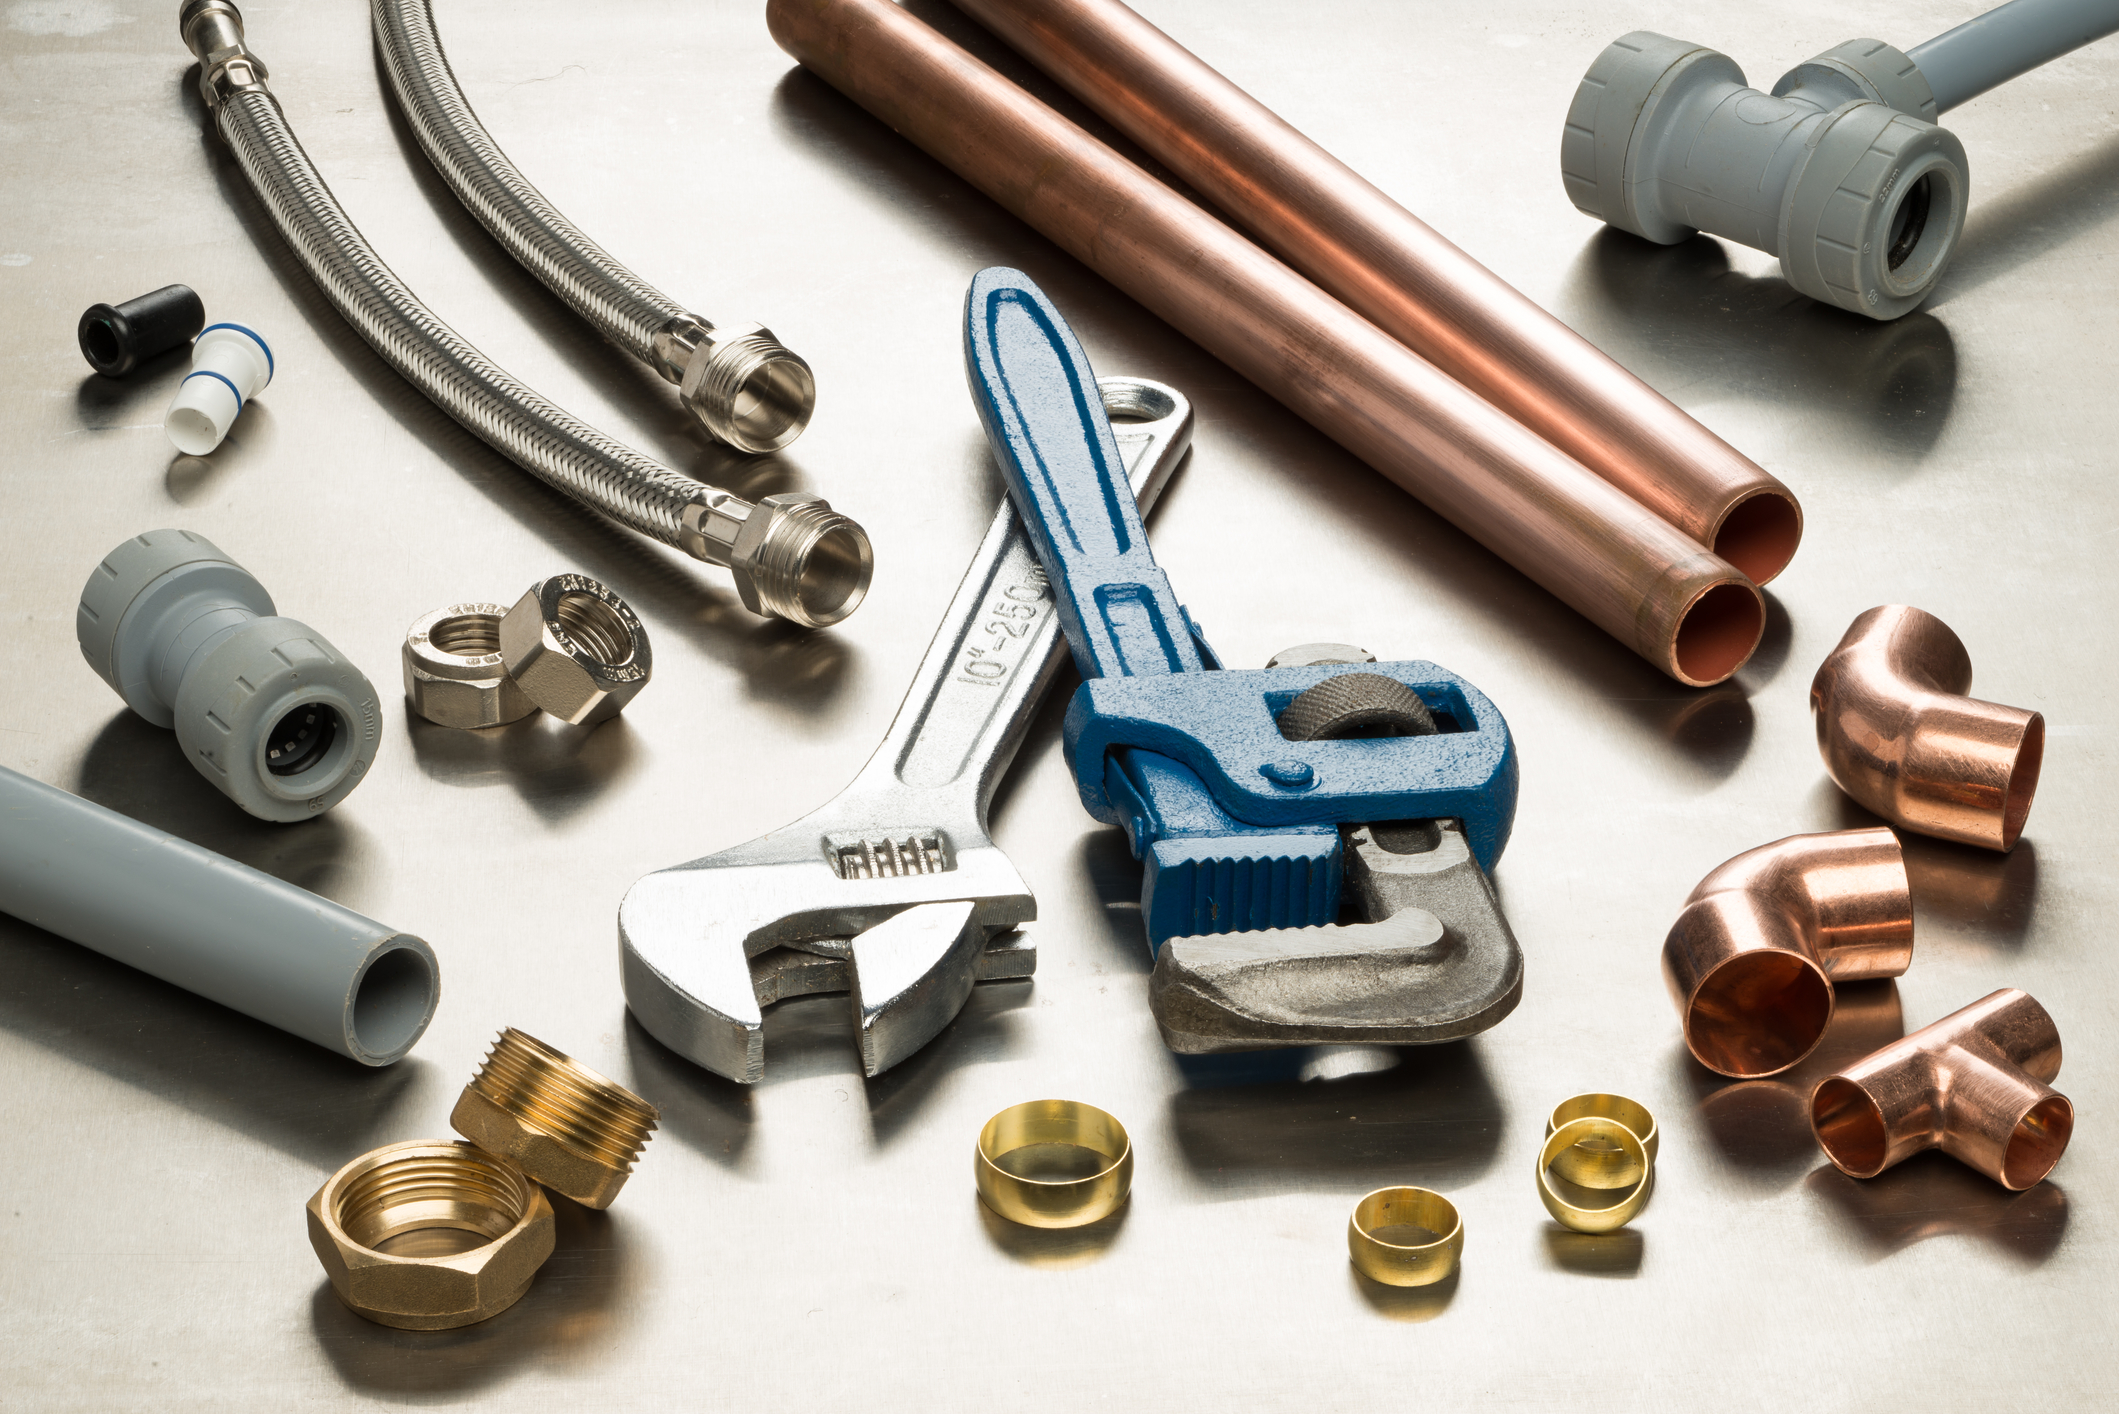 Commercial Plumbing Service & Repair